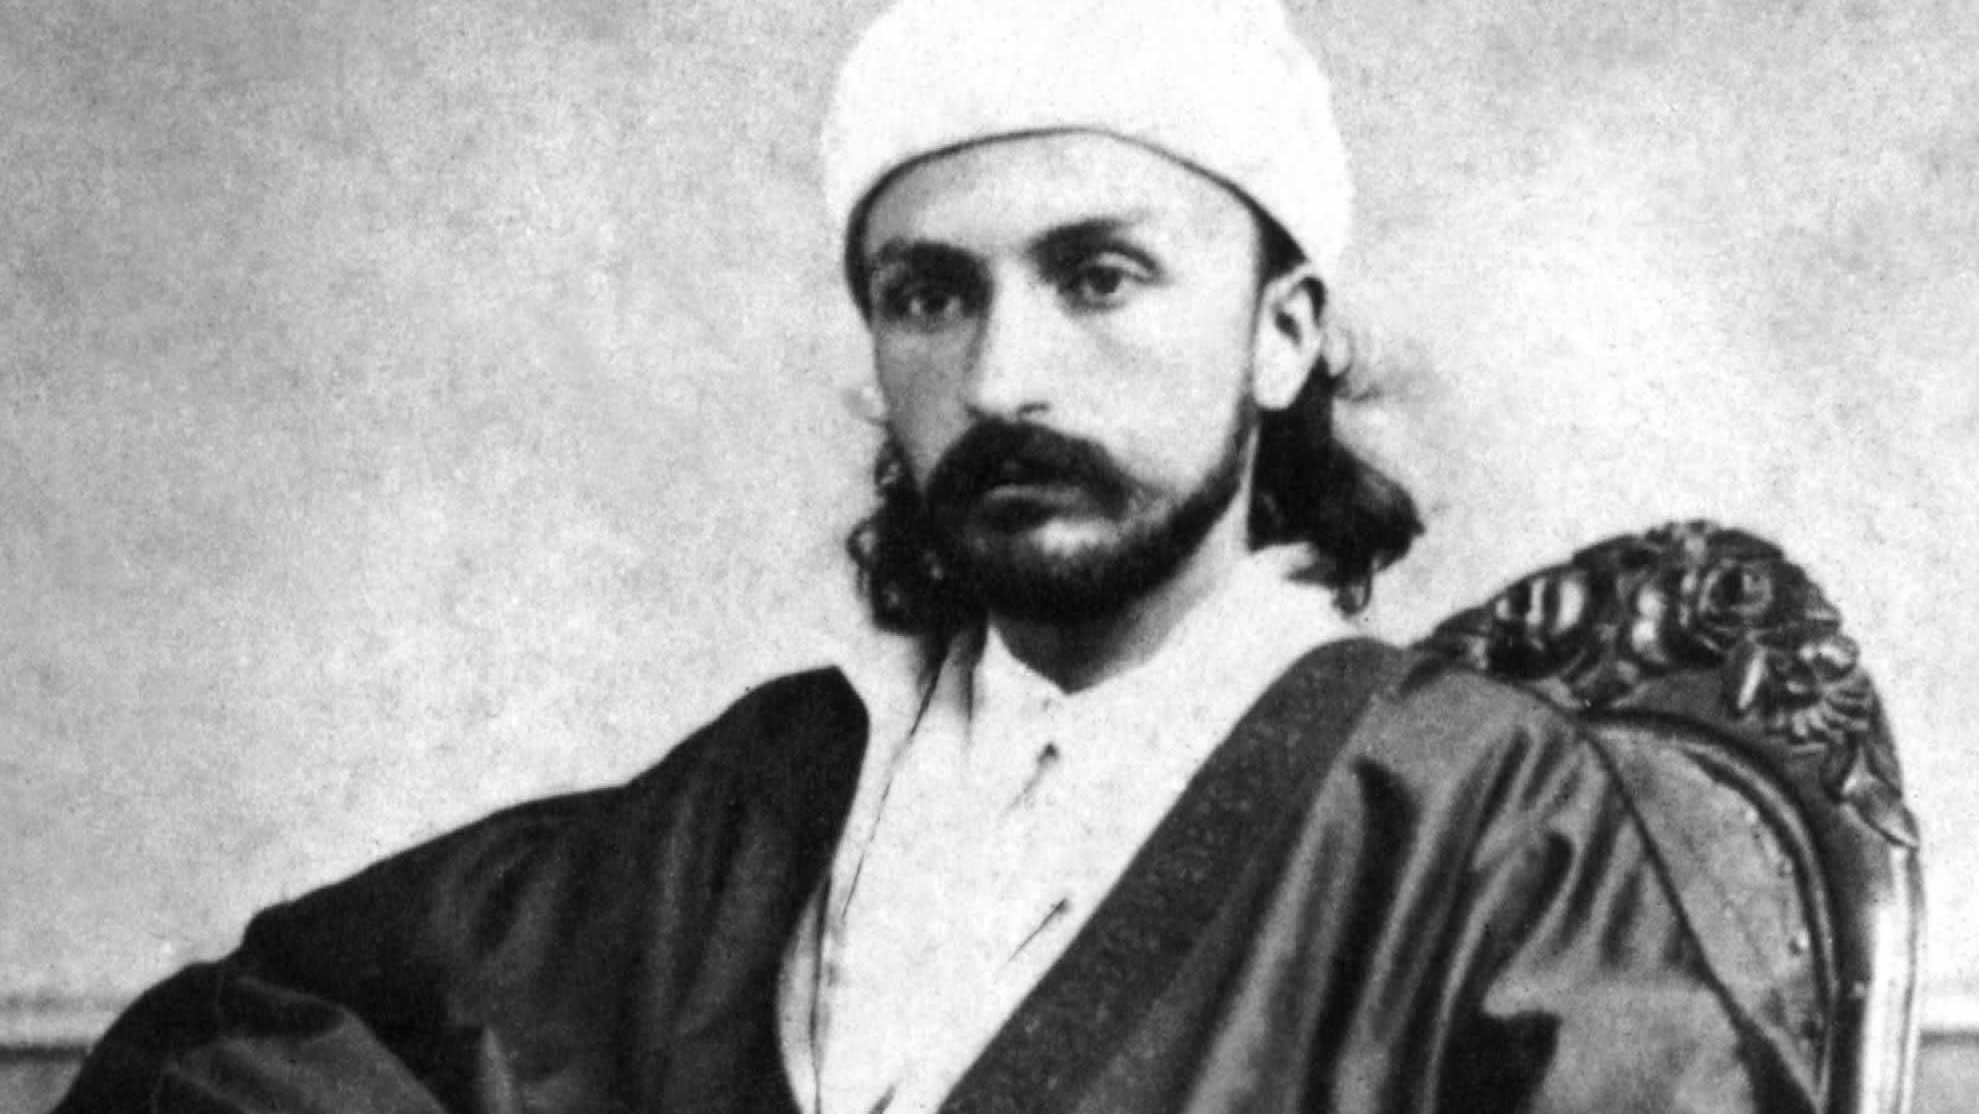 'Abdu'l-Bahá, as a young man, seated in a chair for an official portrait